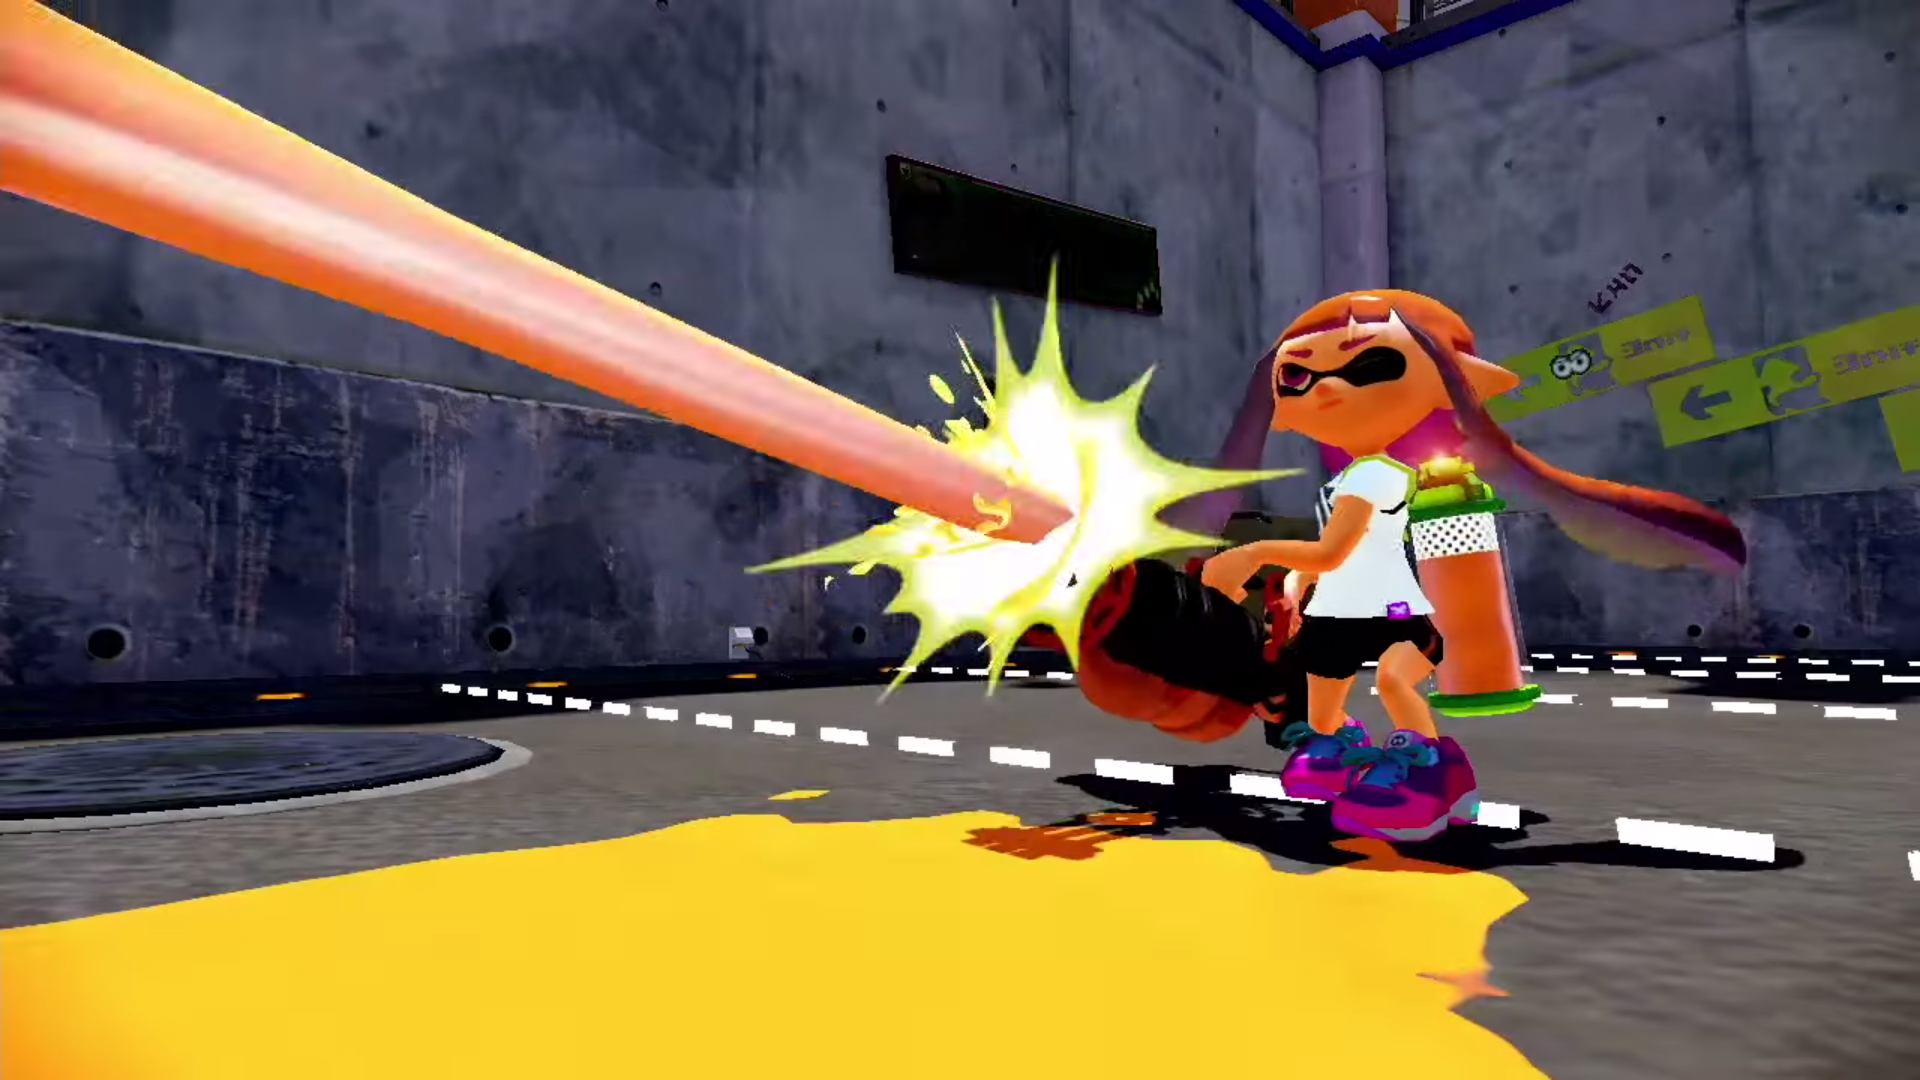 Splatling minigun na farbę